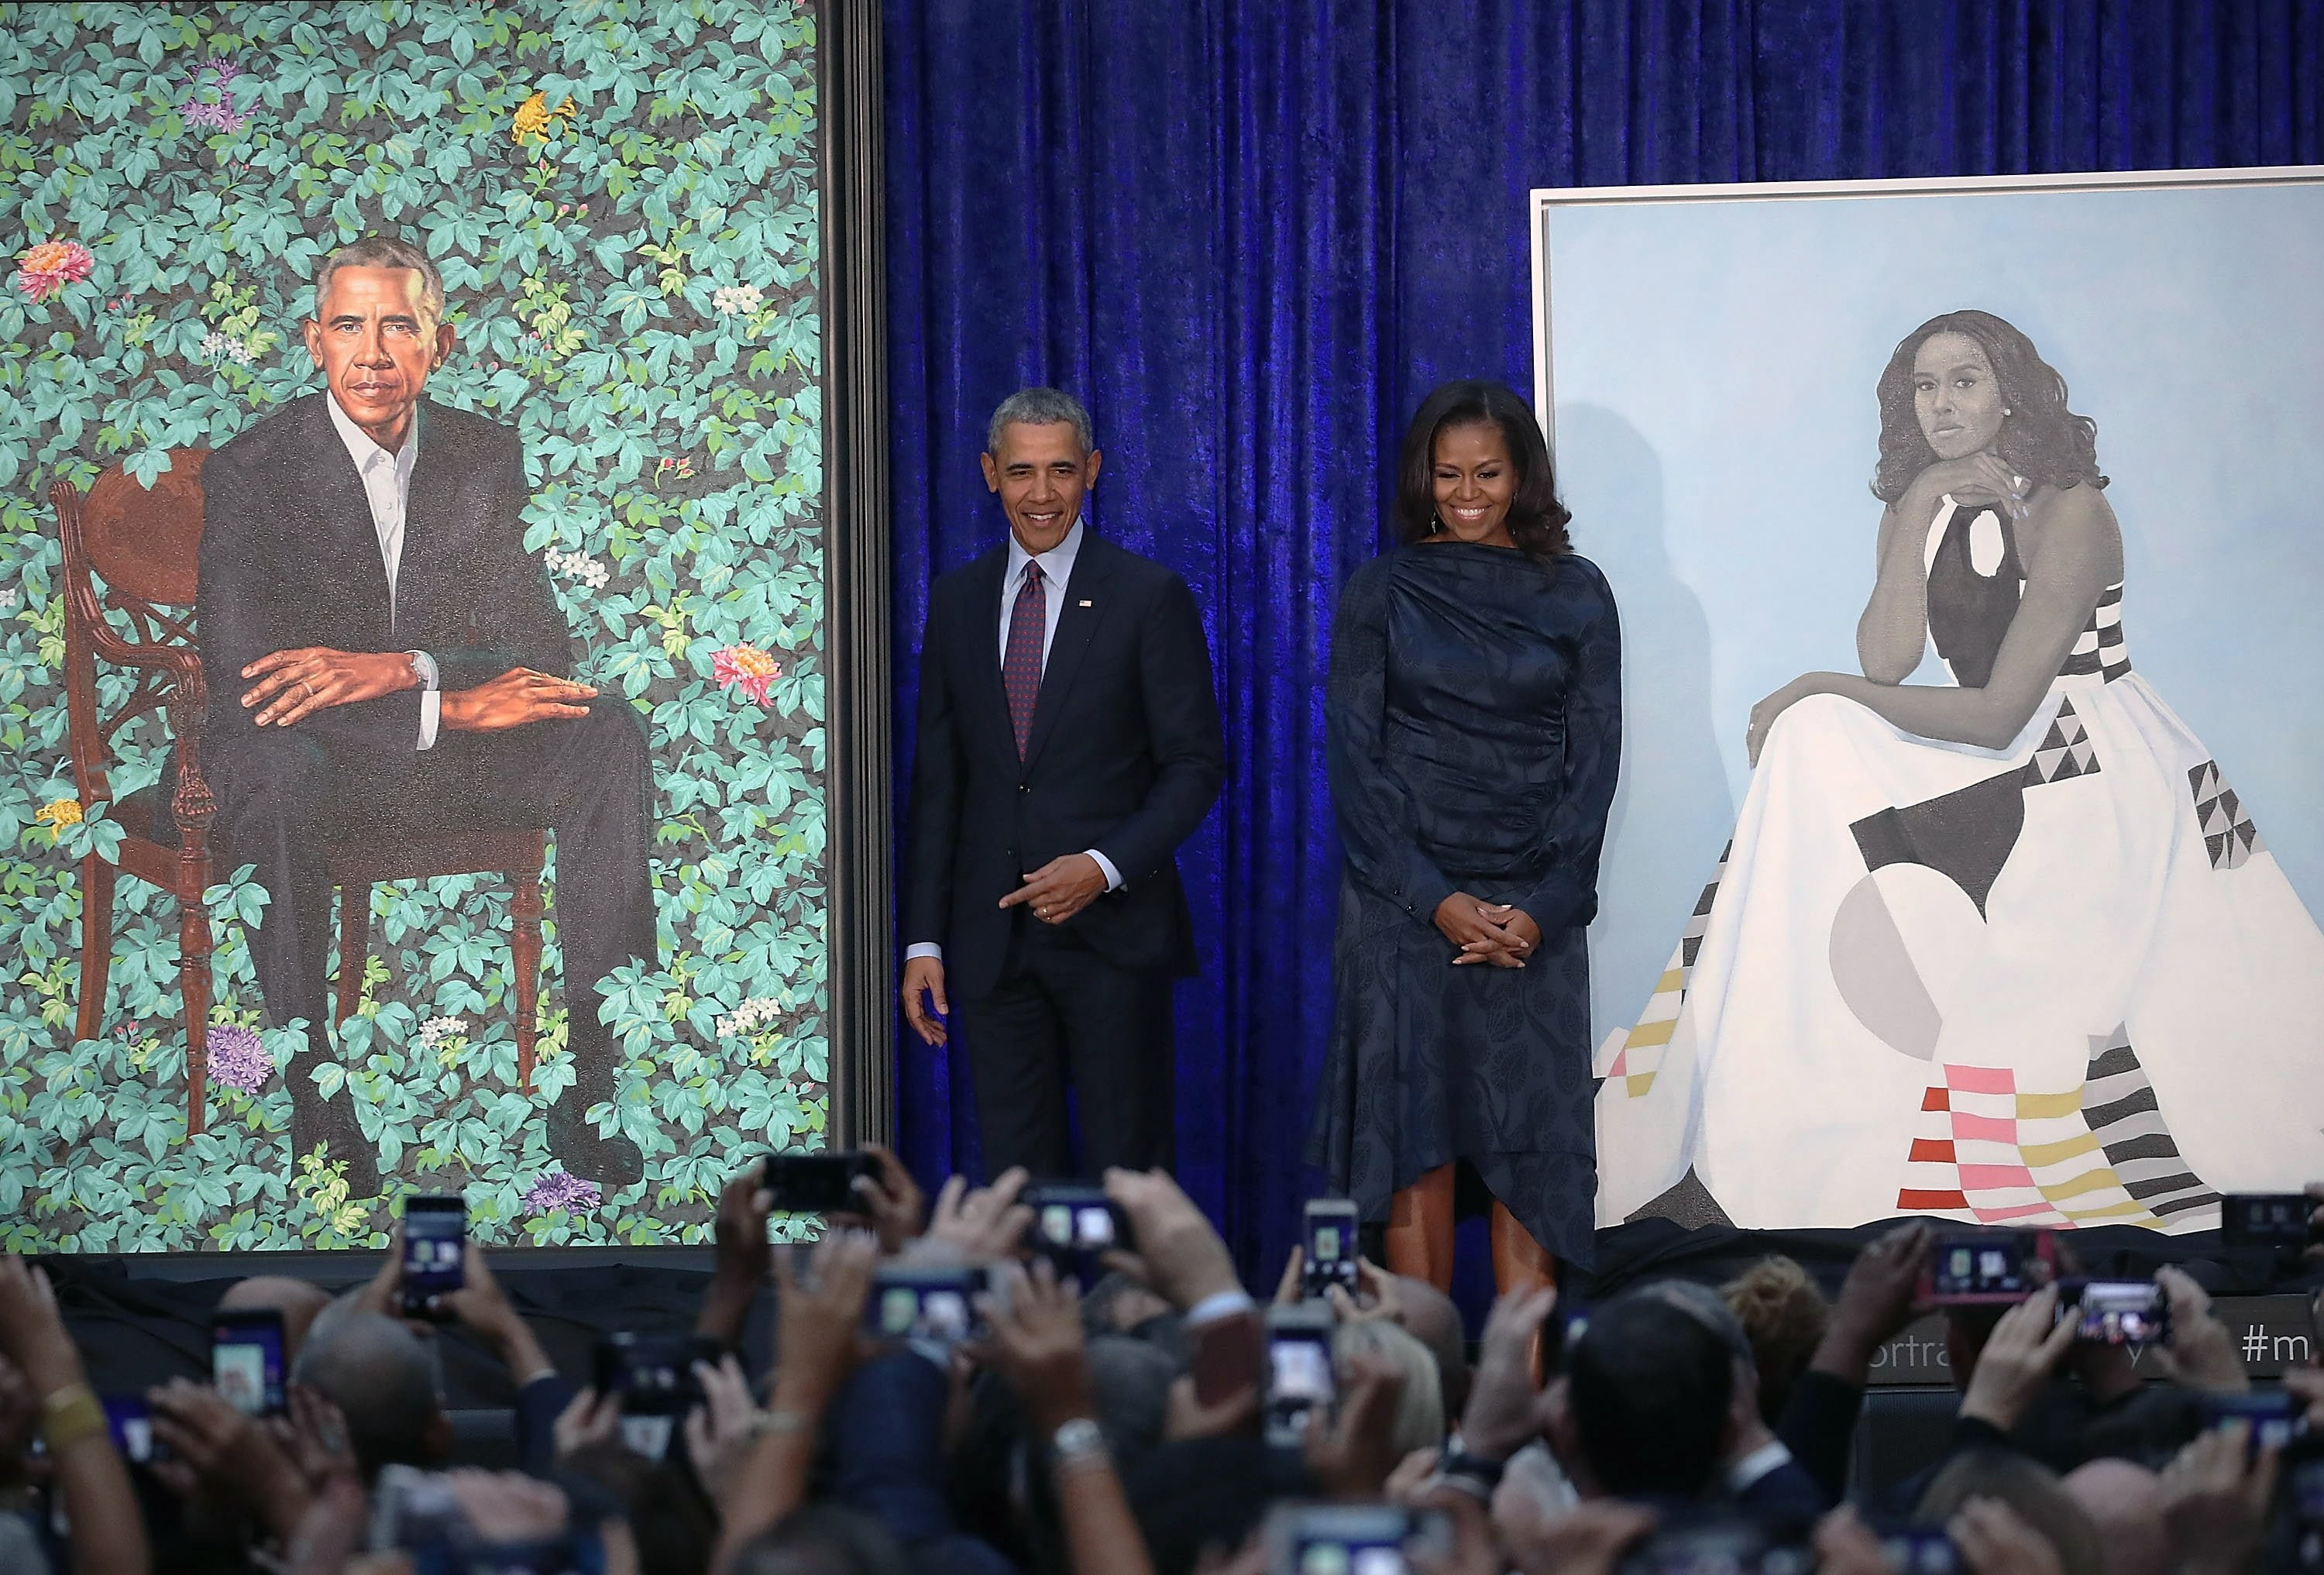 Nigerian artist presents Obamas with portrait